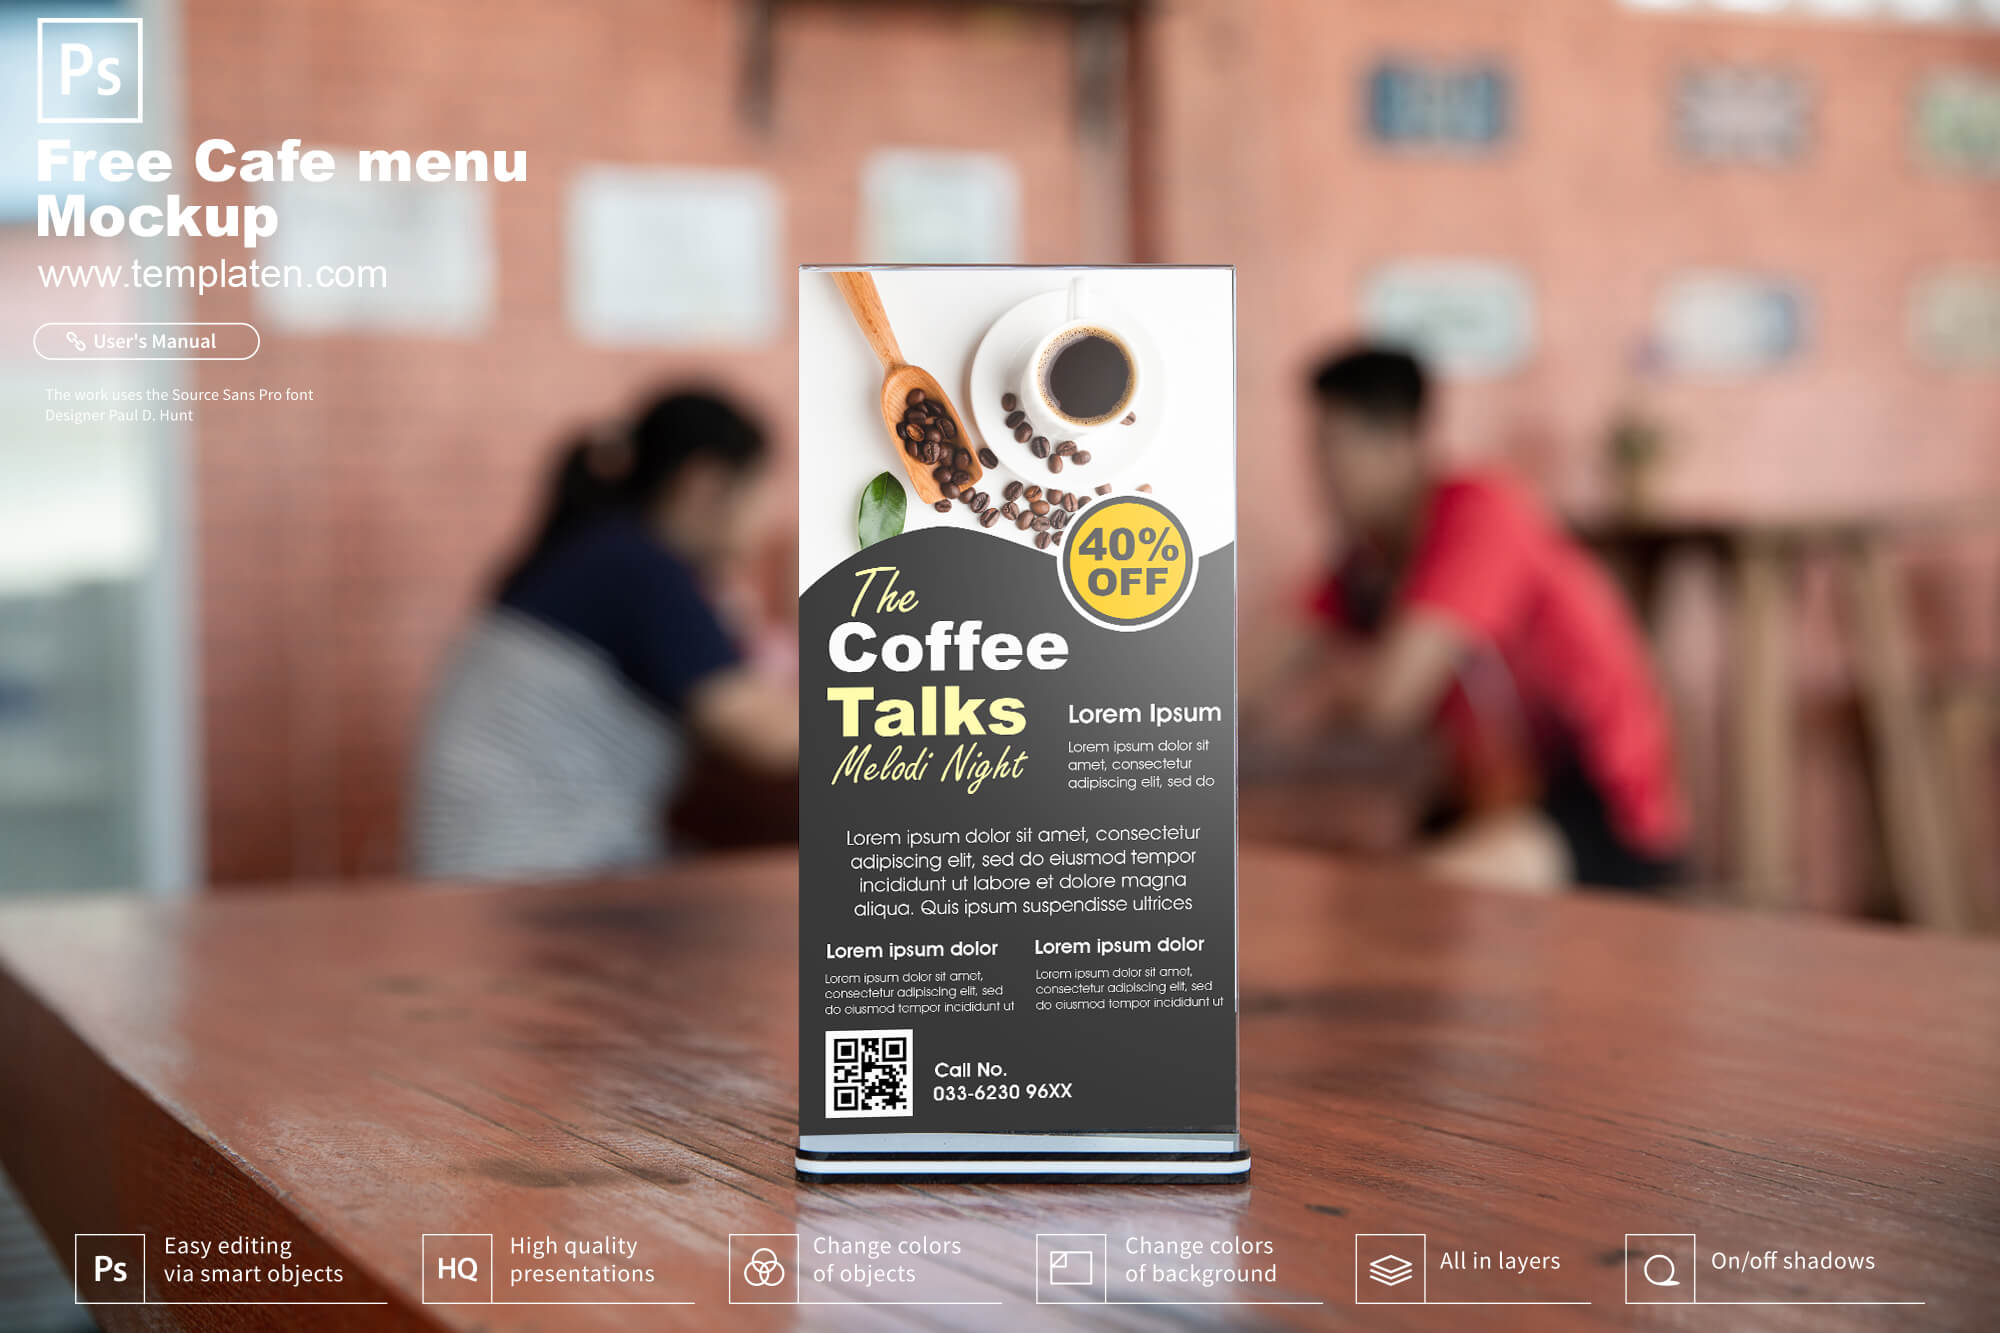 Free Cafe menu mockup PSD Template